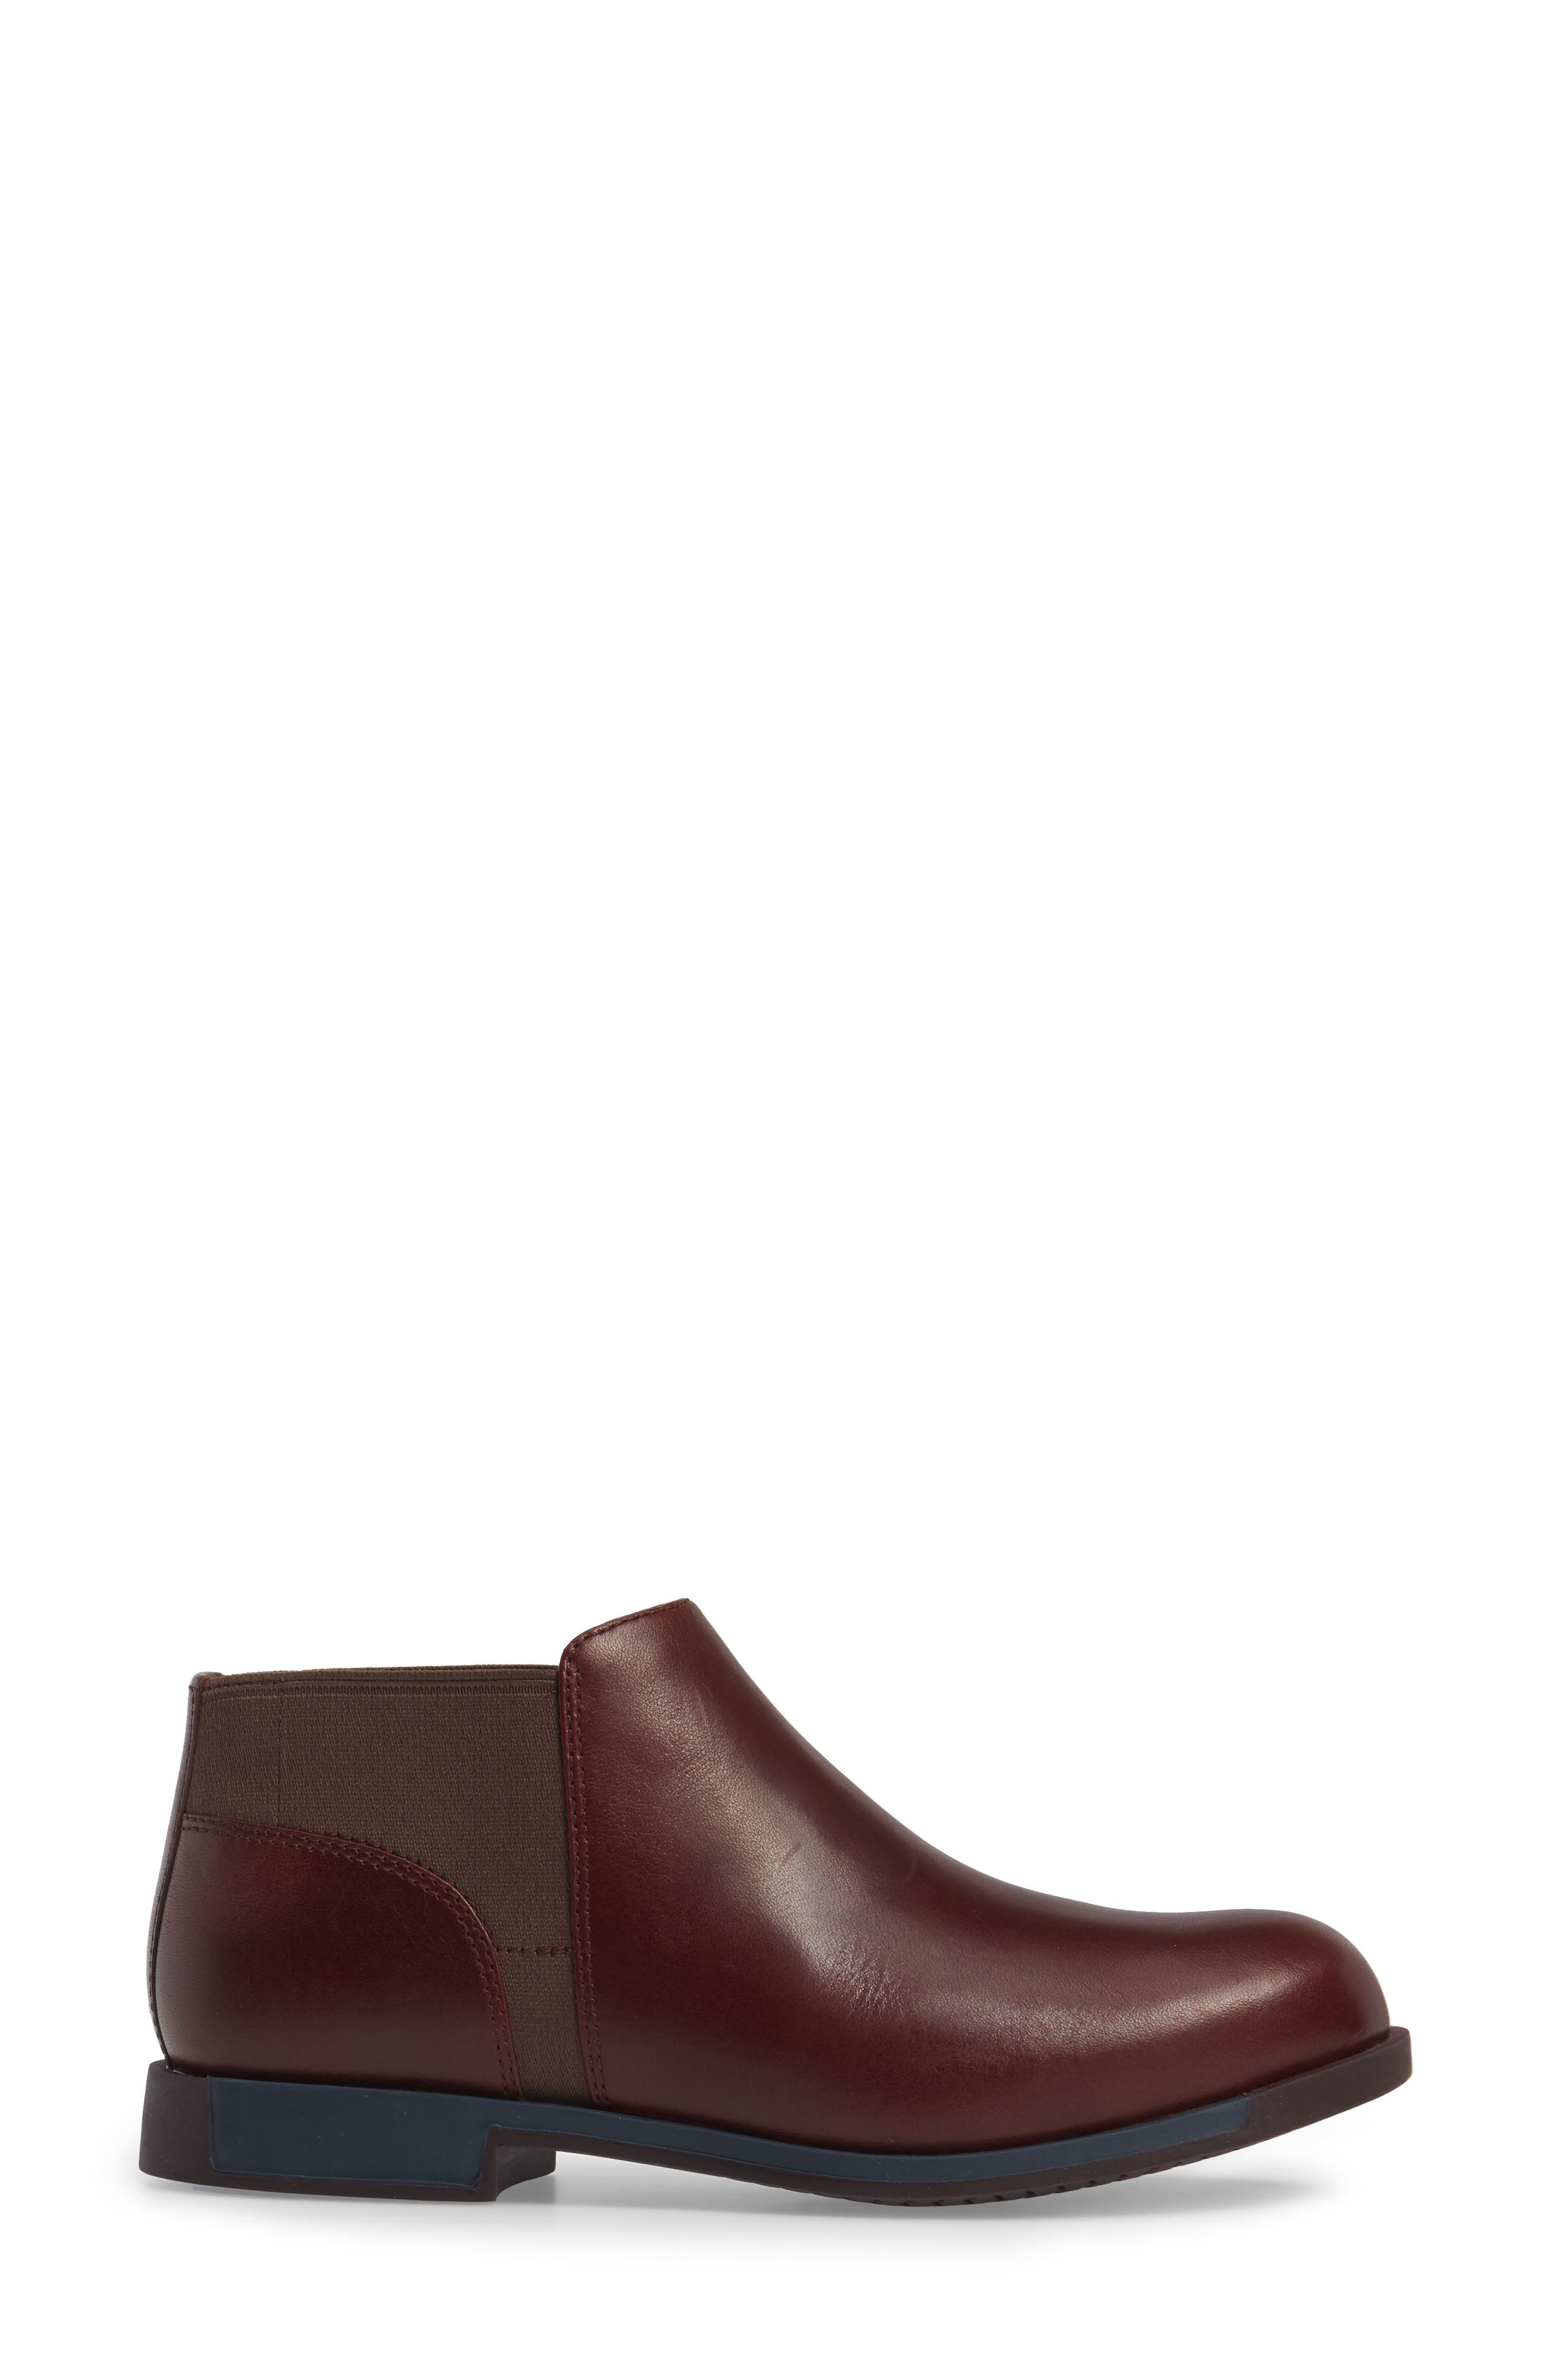 CAMPER,                             Bowie Chelsea Boot,                             Alternate thumbnail 3, color,                             600